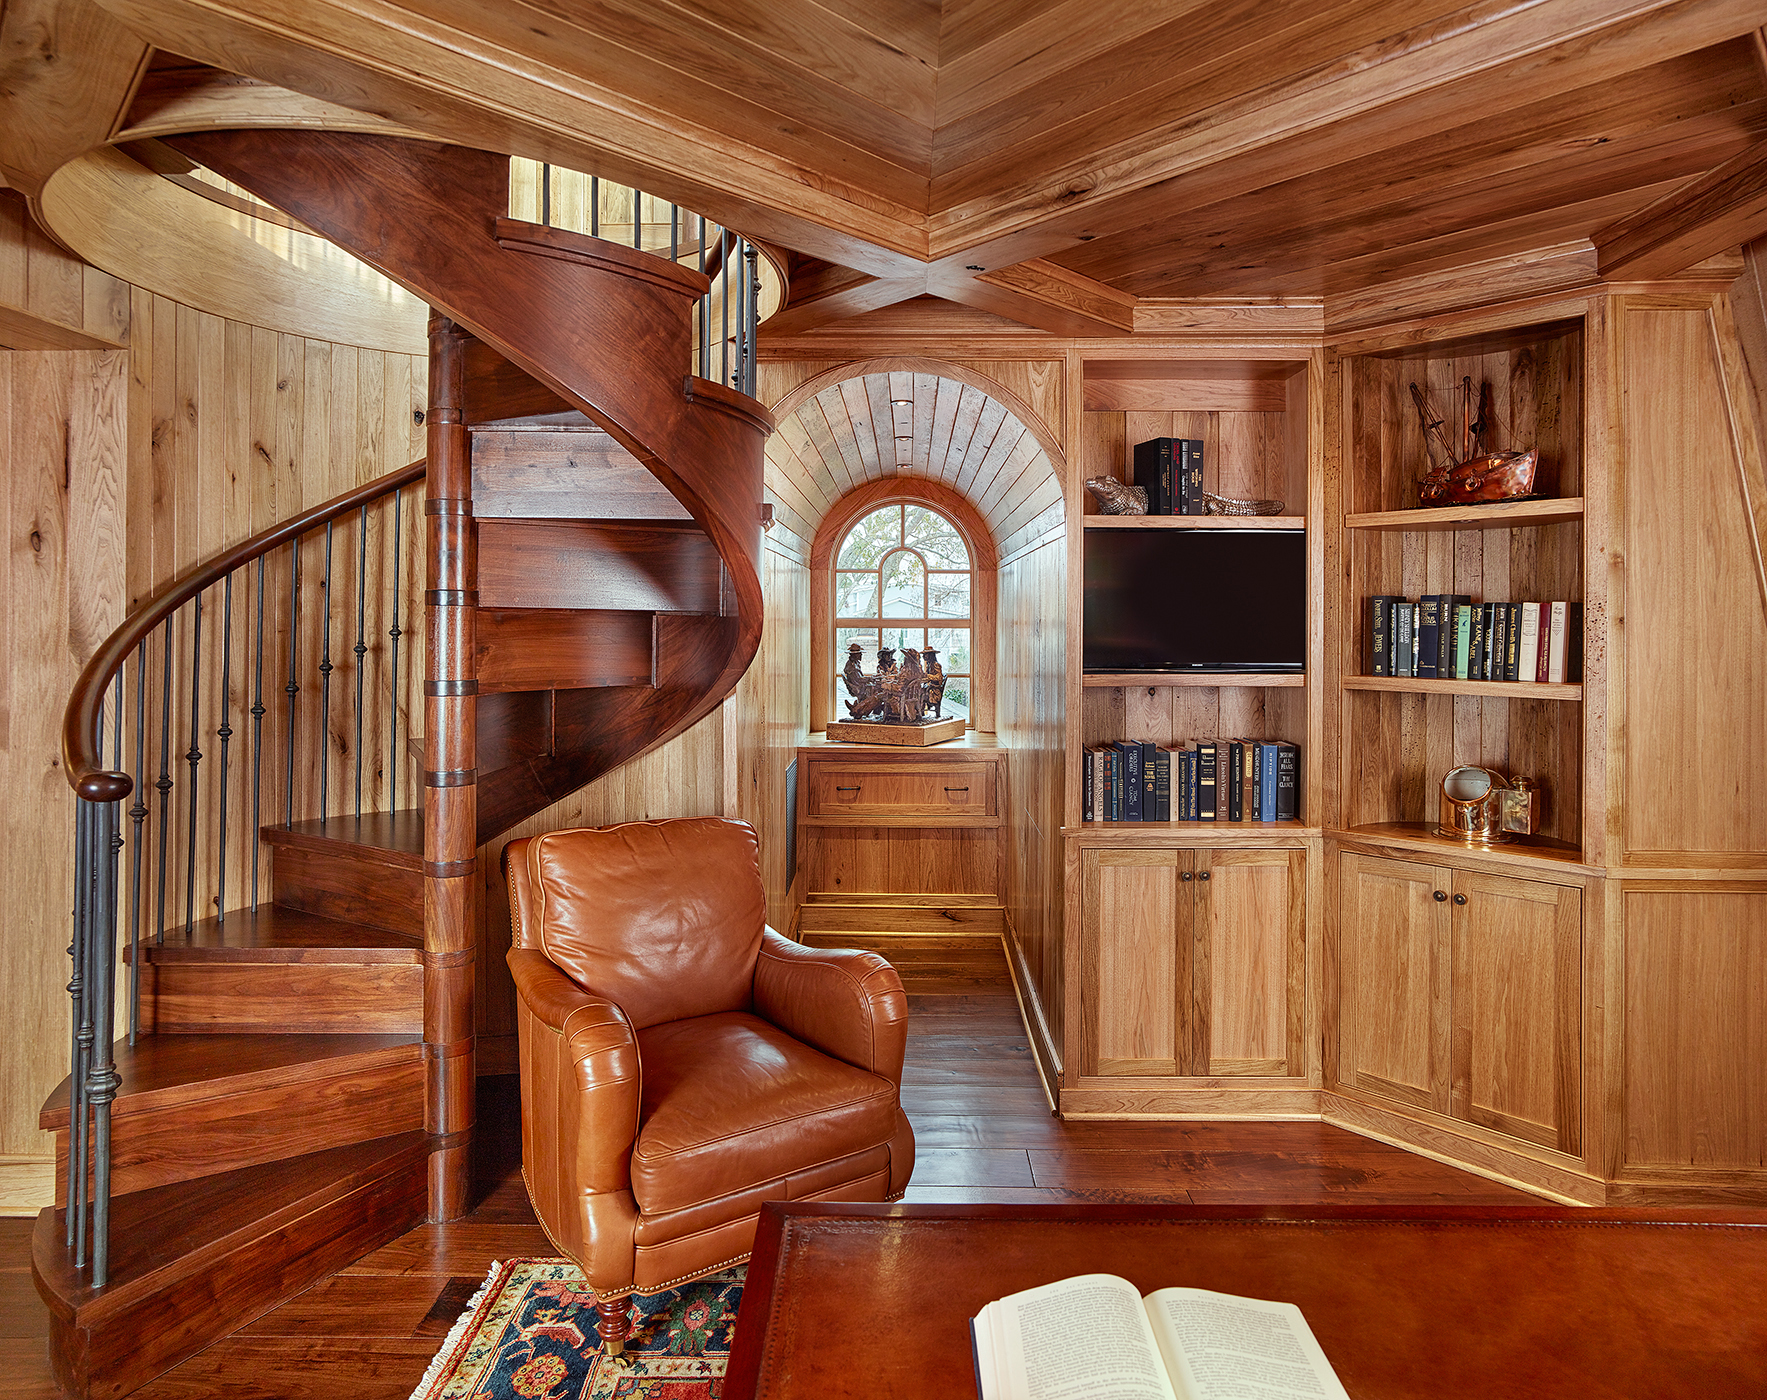 Butternut Wood Paneled Library with Wood Spiral Stair and Arched Window by Island Architects